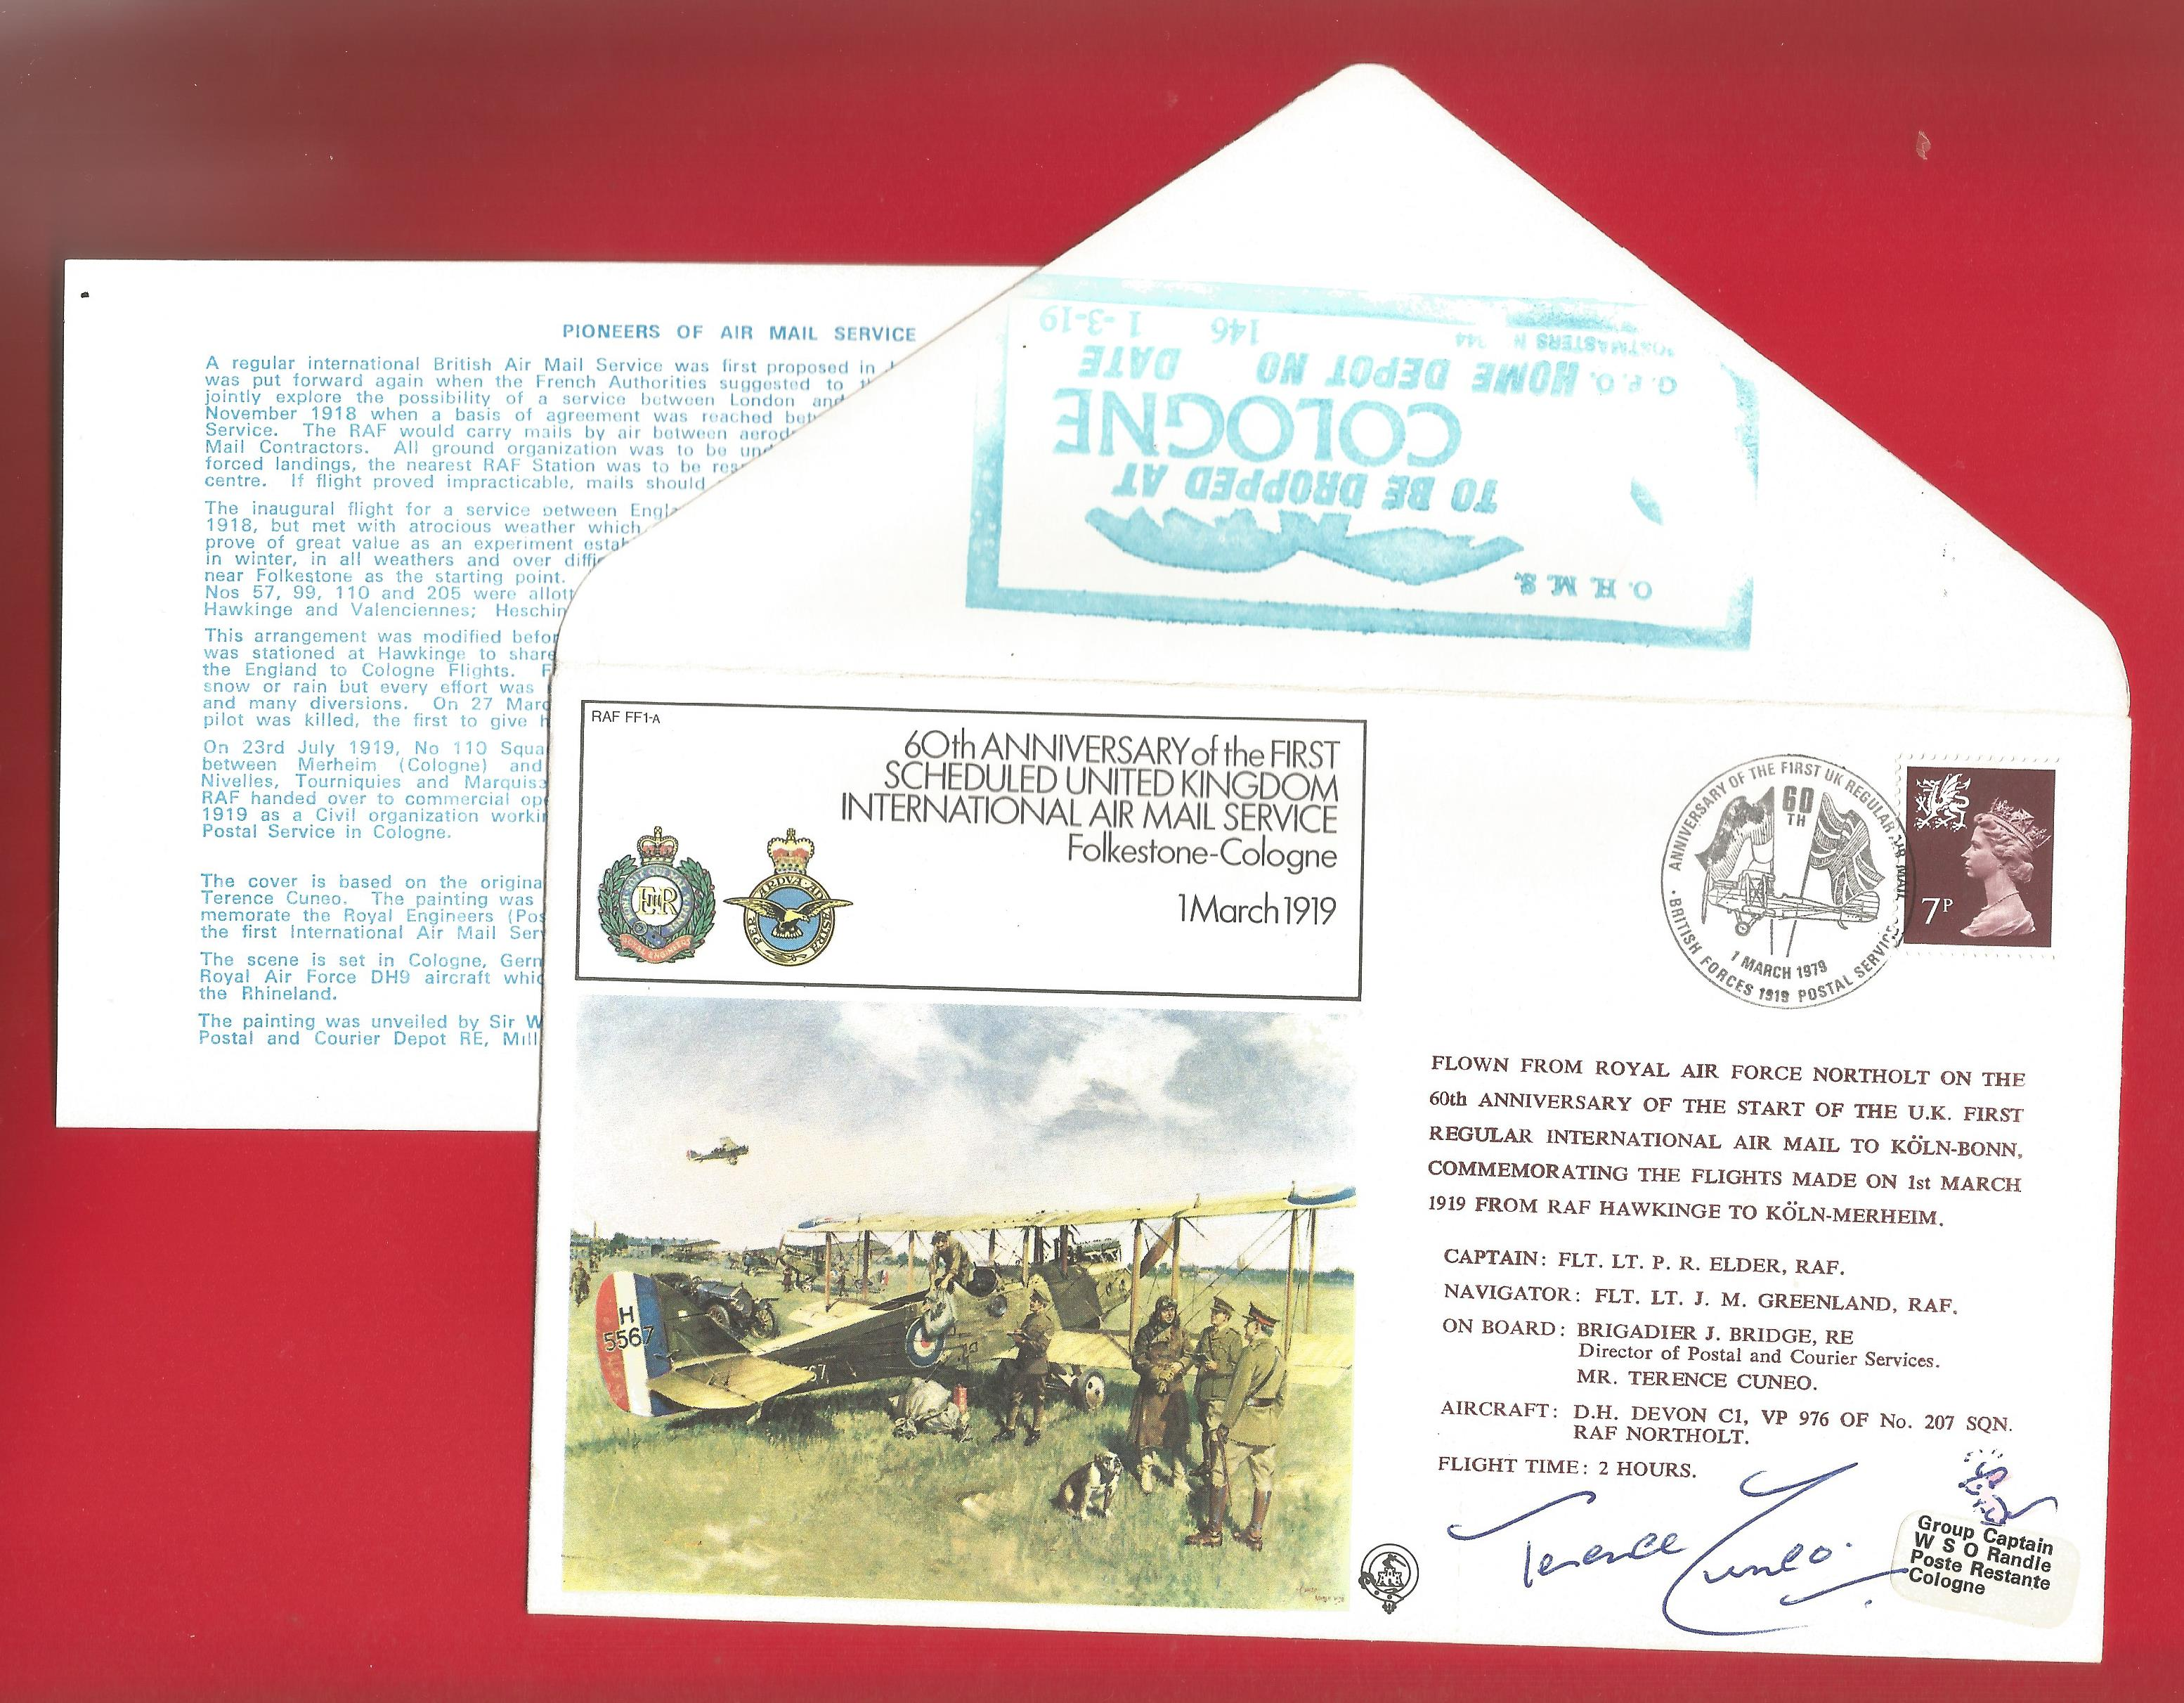 Terence Cuneo, Director of Postal and Courier Services signed FDC celebrating the 60th Anniversary